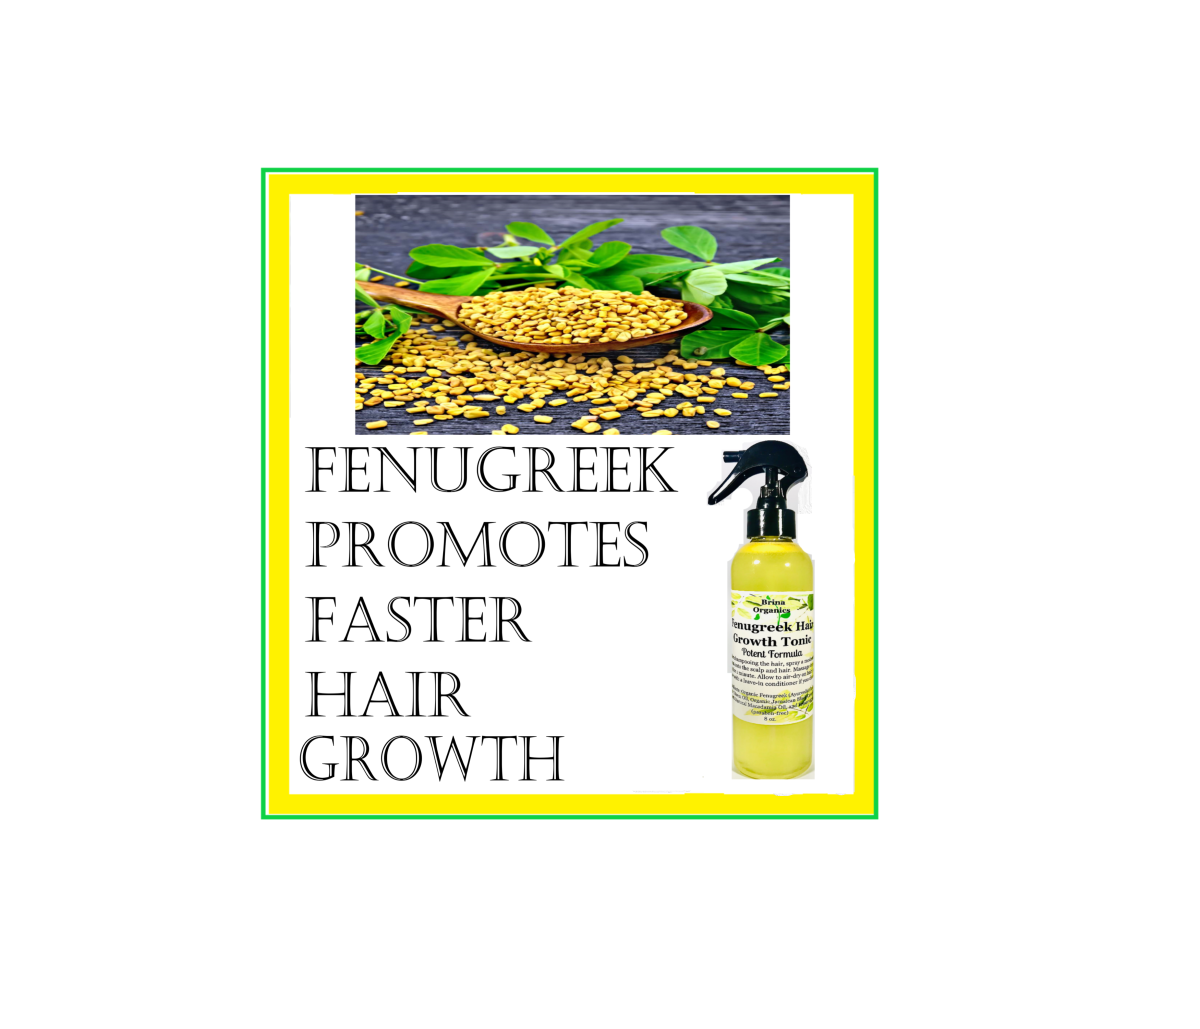 This Fenugreek Hair Tonic absorbs into the hair giving it nourishment, stimulating new growth, and thicker hair